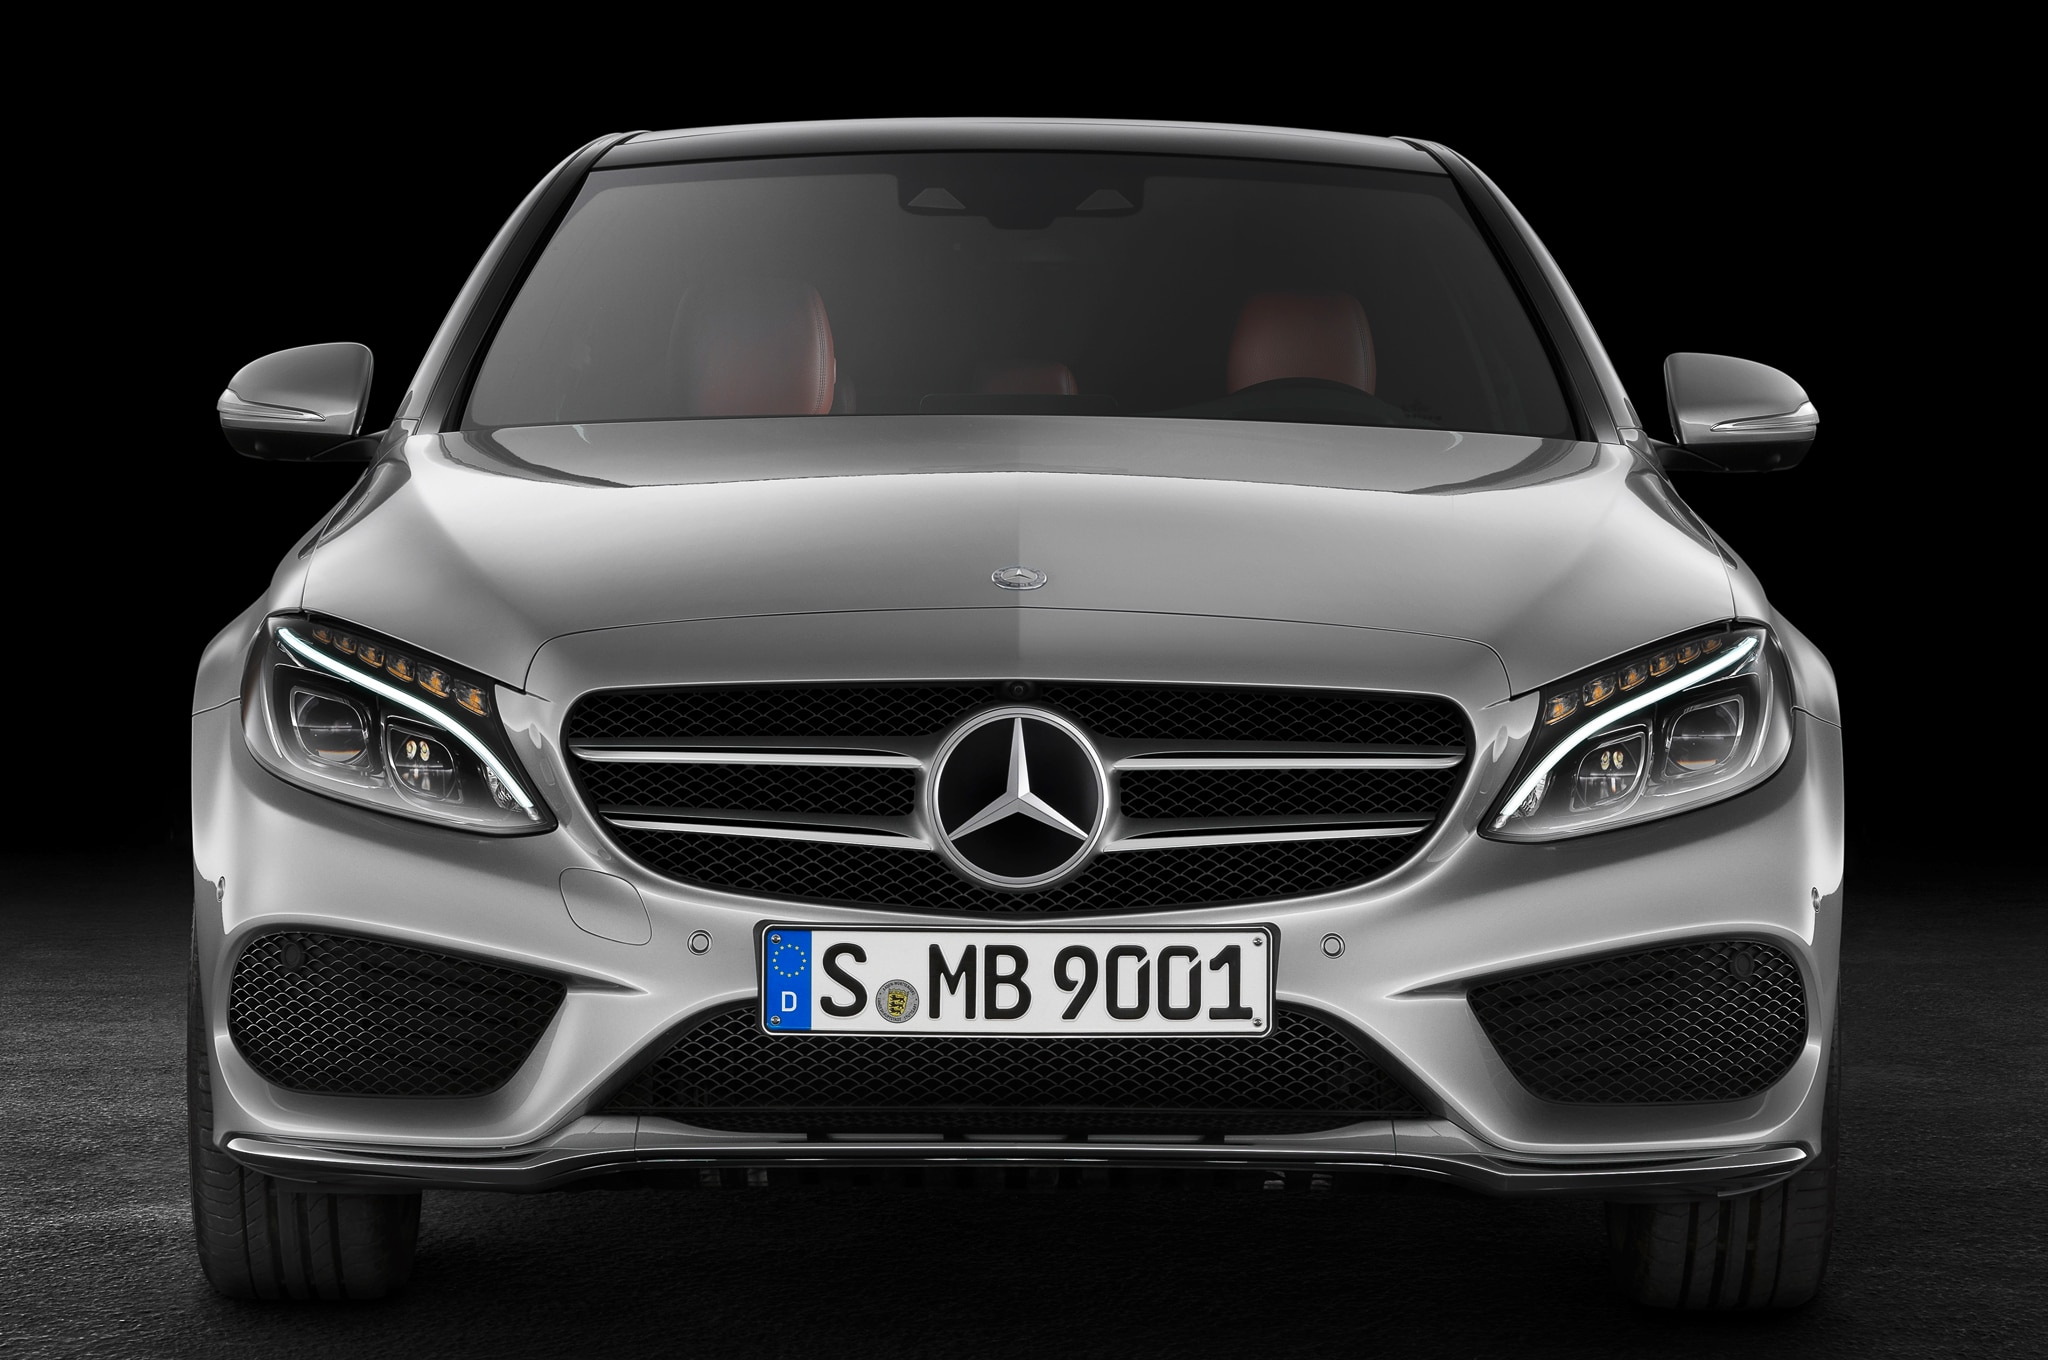 2015 mercedes benz c400 4matic review automobile magazine for 2015 mercedes benz c300 4matic